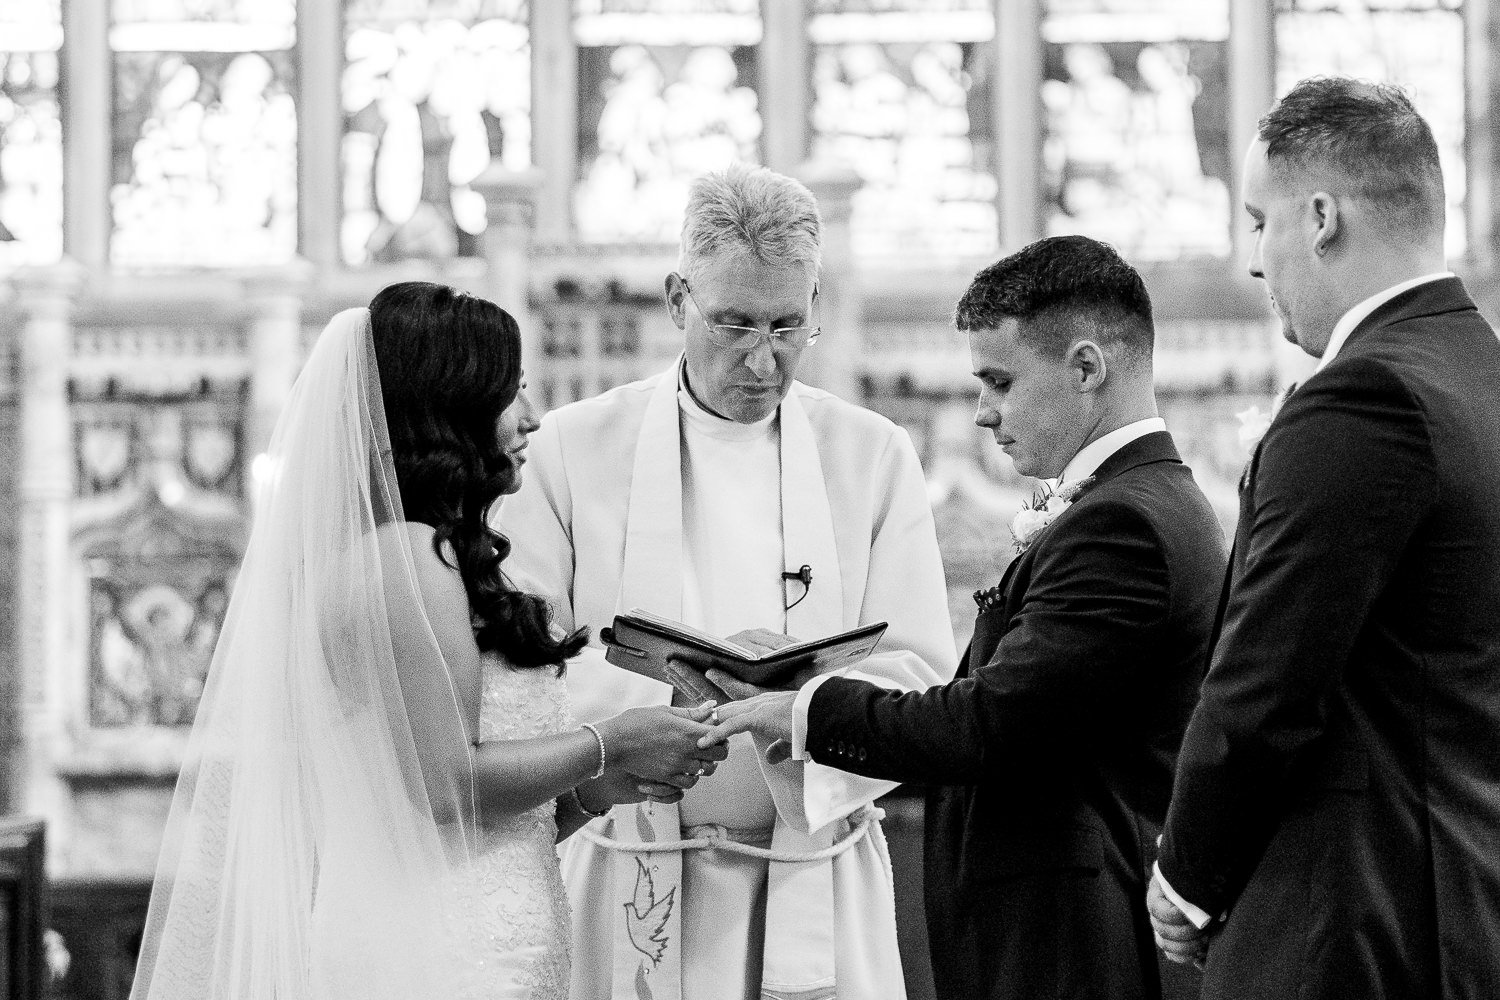 Bride and groom exchanging rings at St Martins.